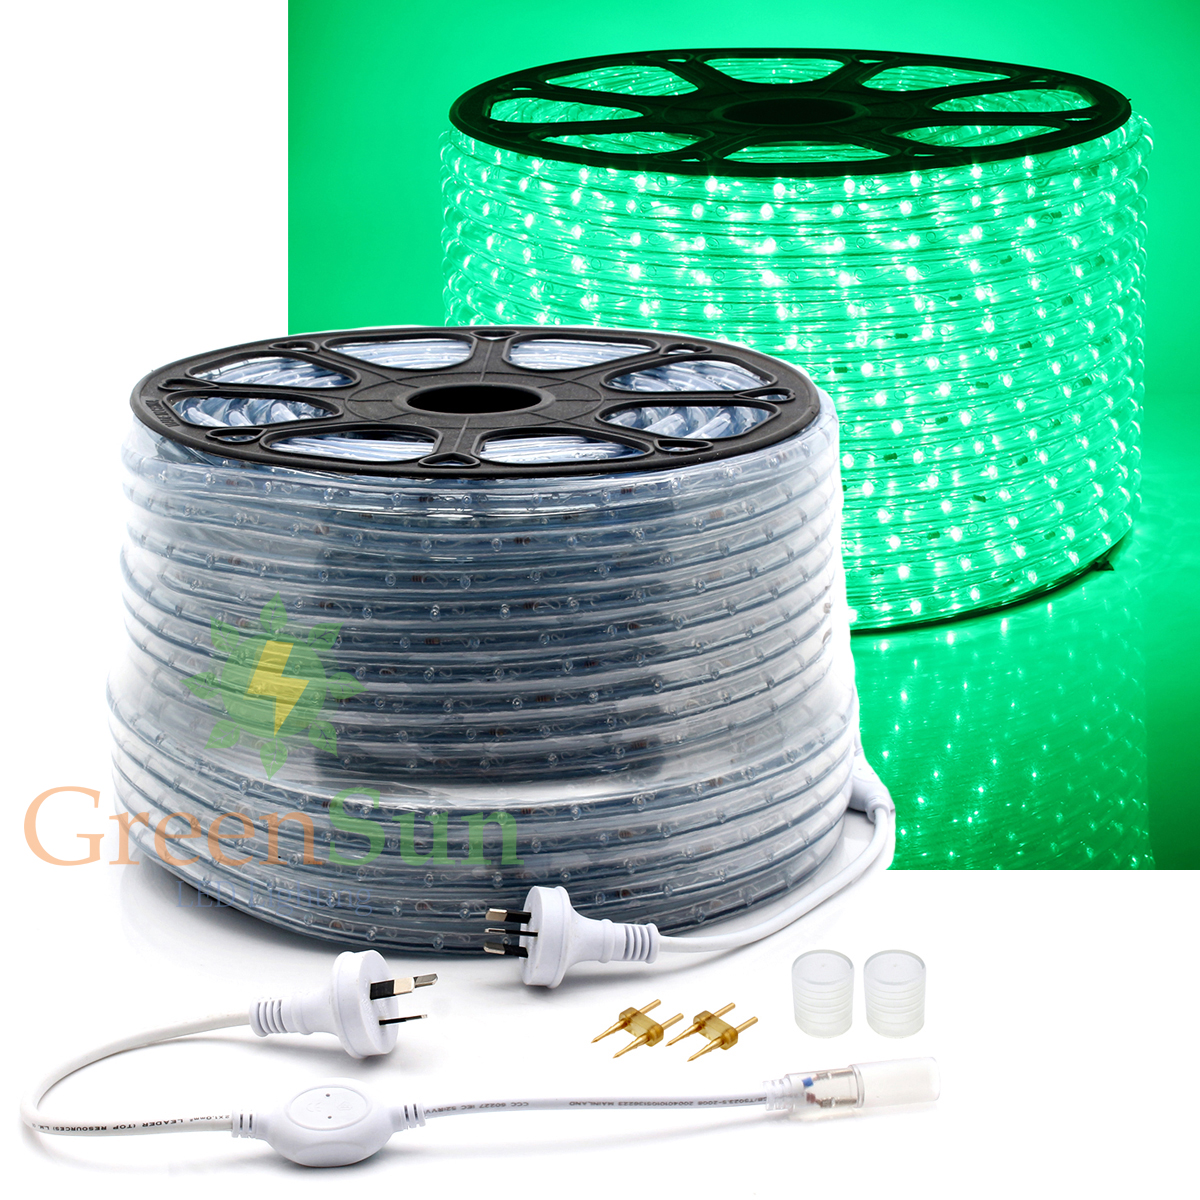 medium resolution of aliexpress com buy 20 50m green led strip light 36leds m 2 wire waterproof ip68 home garden xmas lamp led strip light with power line from reliable led